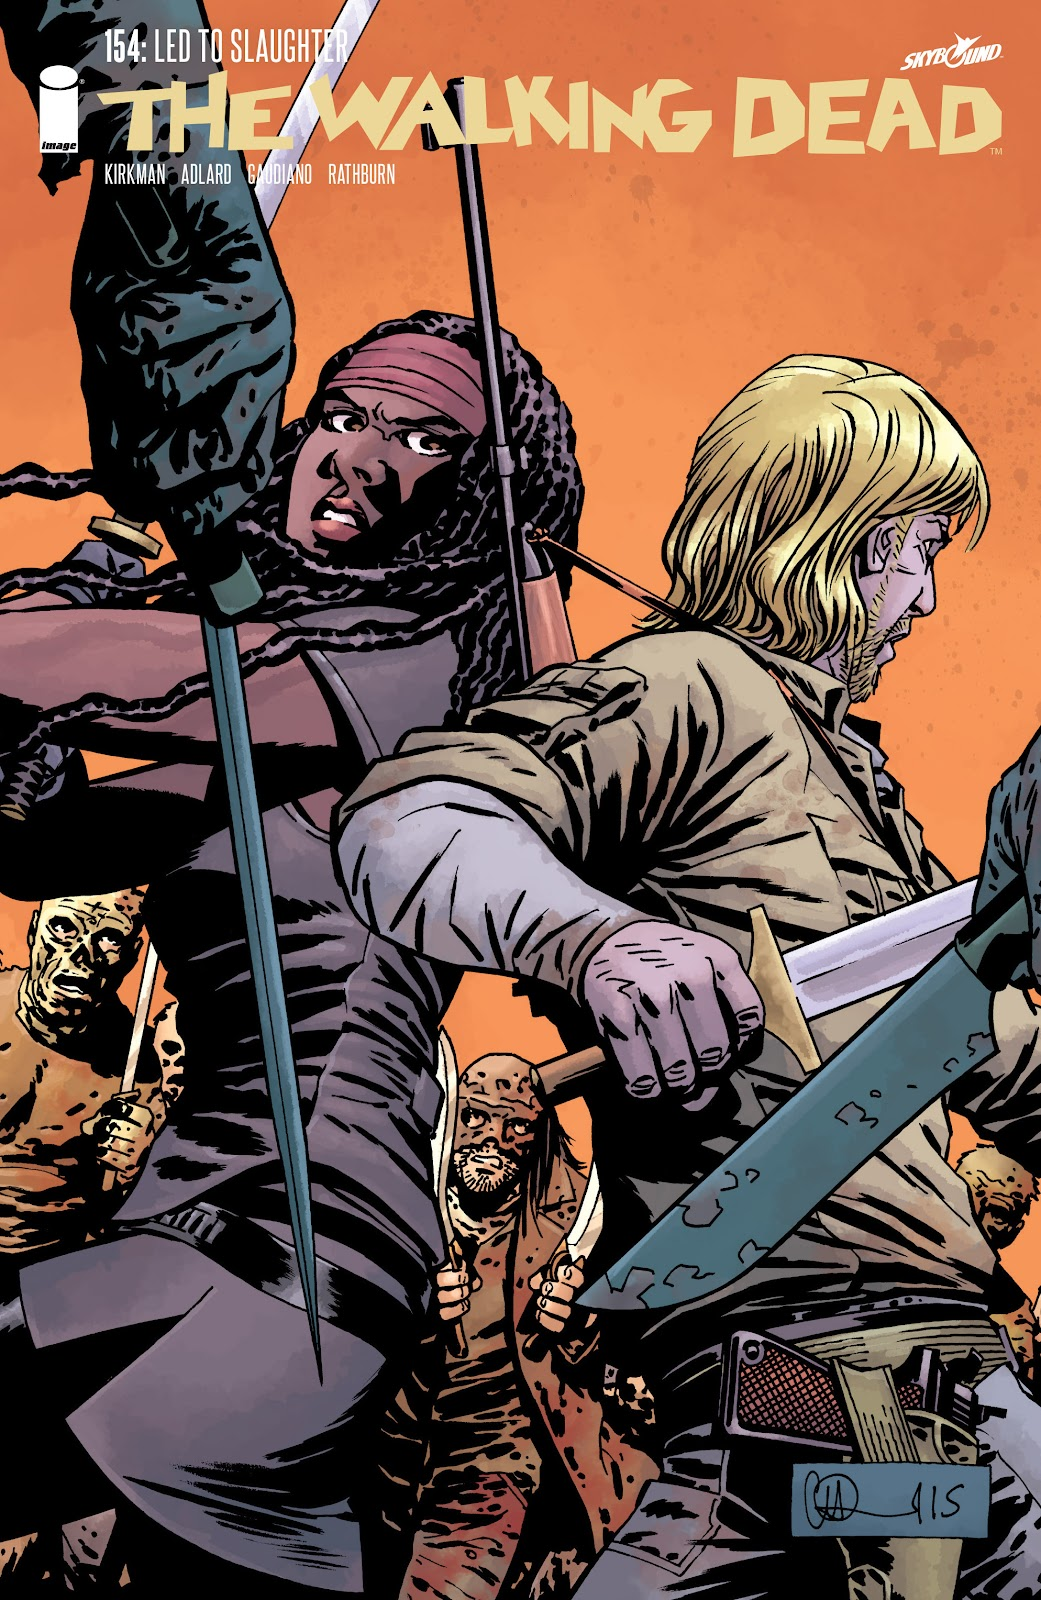 The Walking Dead Issue #154 Page 1